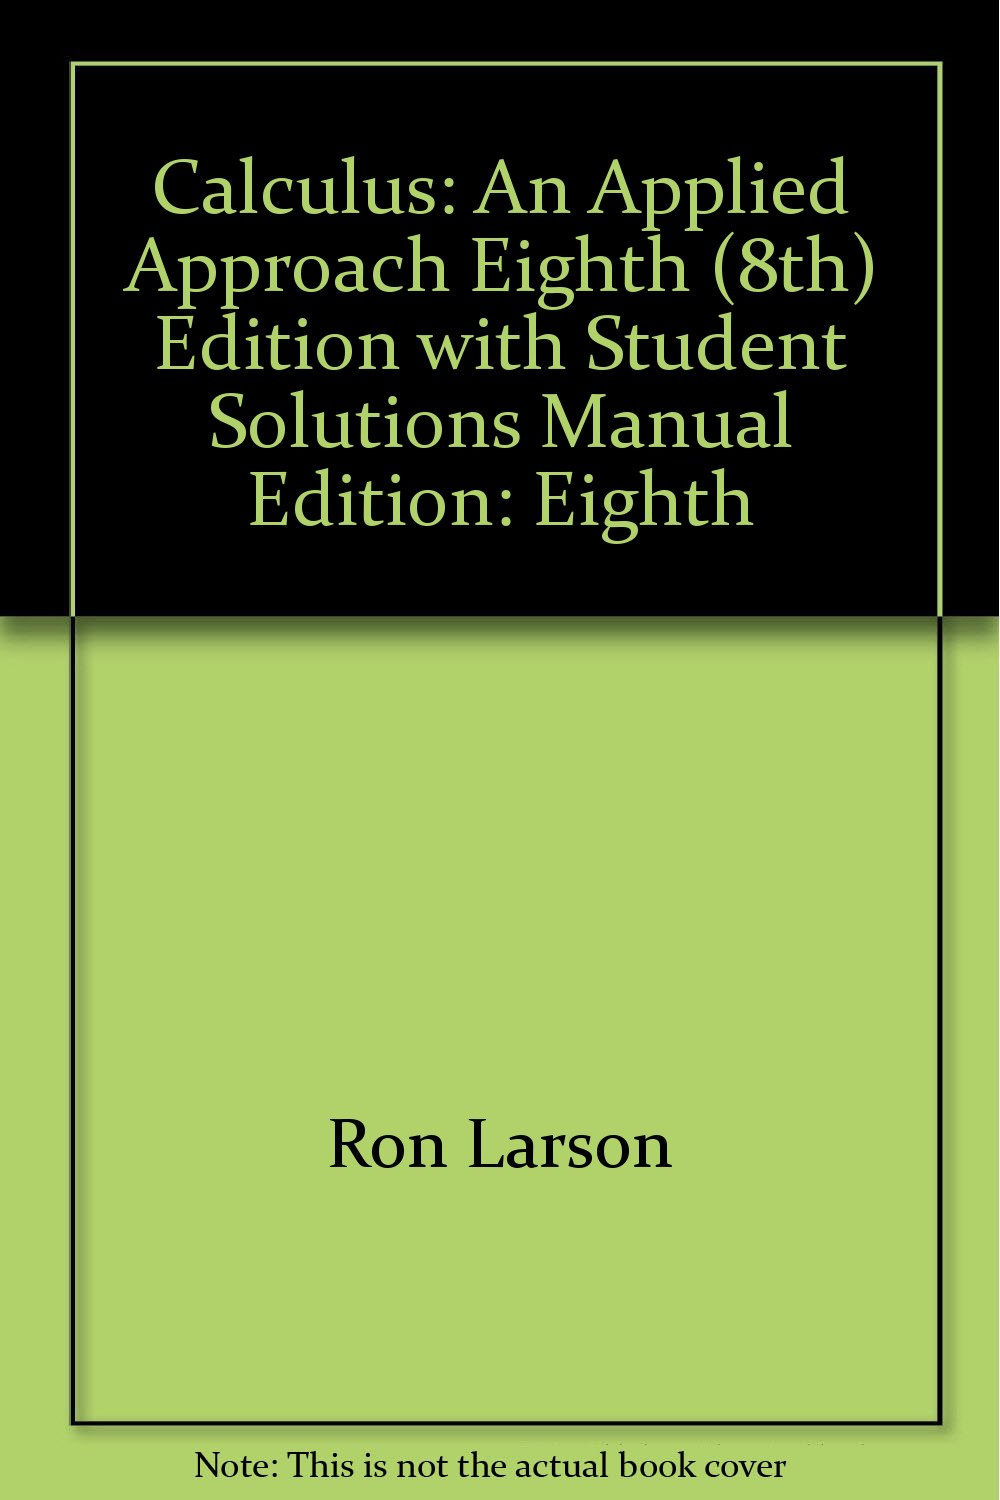 Calculus: An Applied Approach, Eighth (8th) Edition with Student Solutions  Manual: 9780547198019: Amazon.com: Books